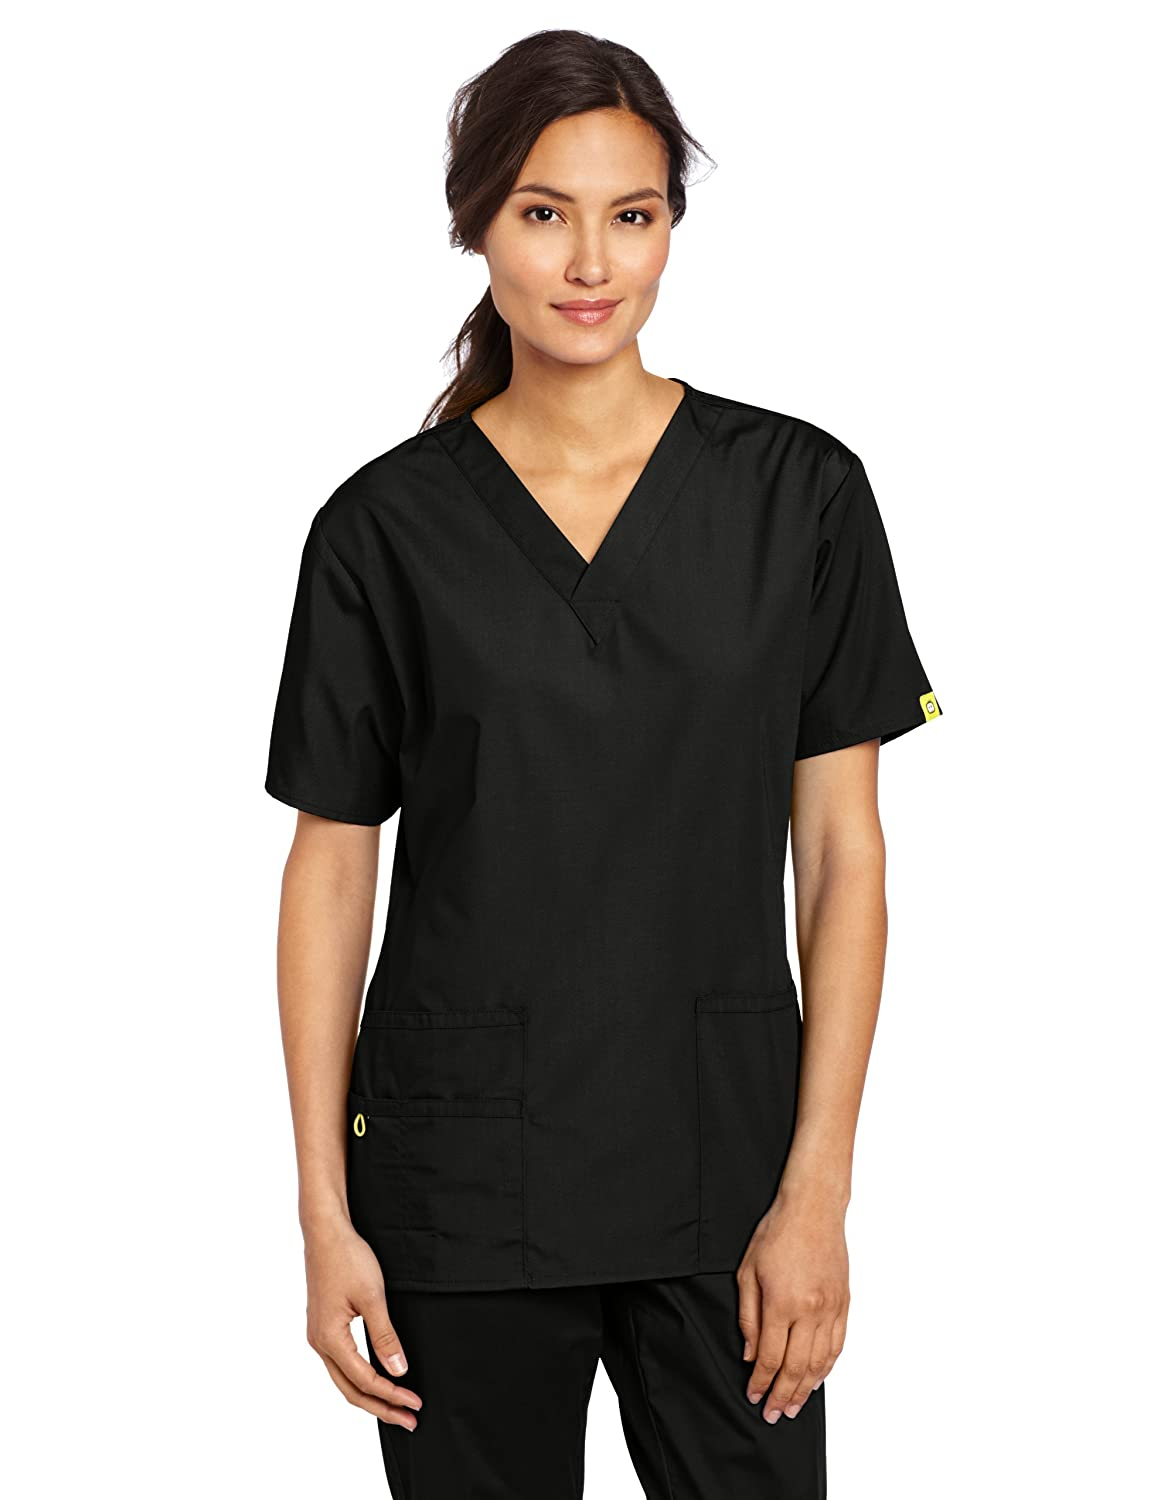 Womens Medical Scrub Tops | Amazon.ca